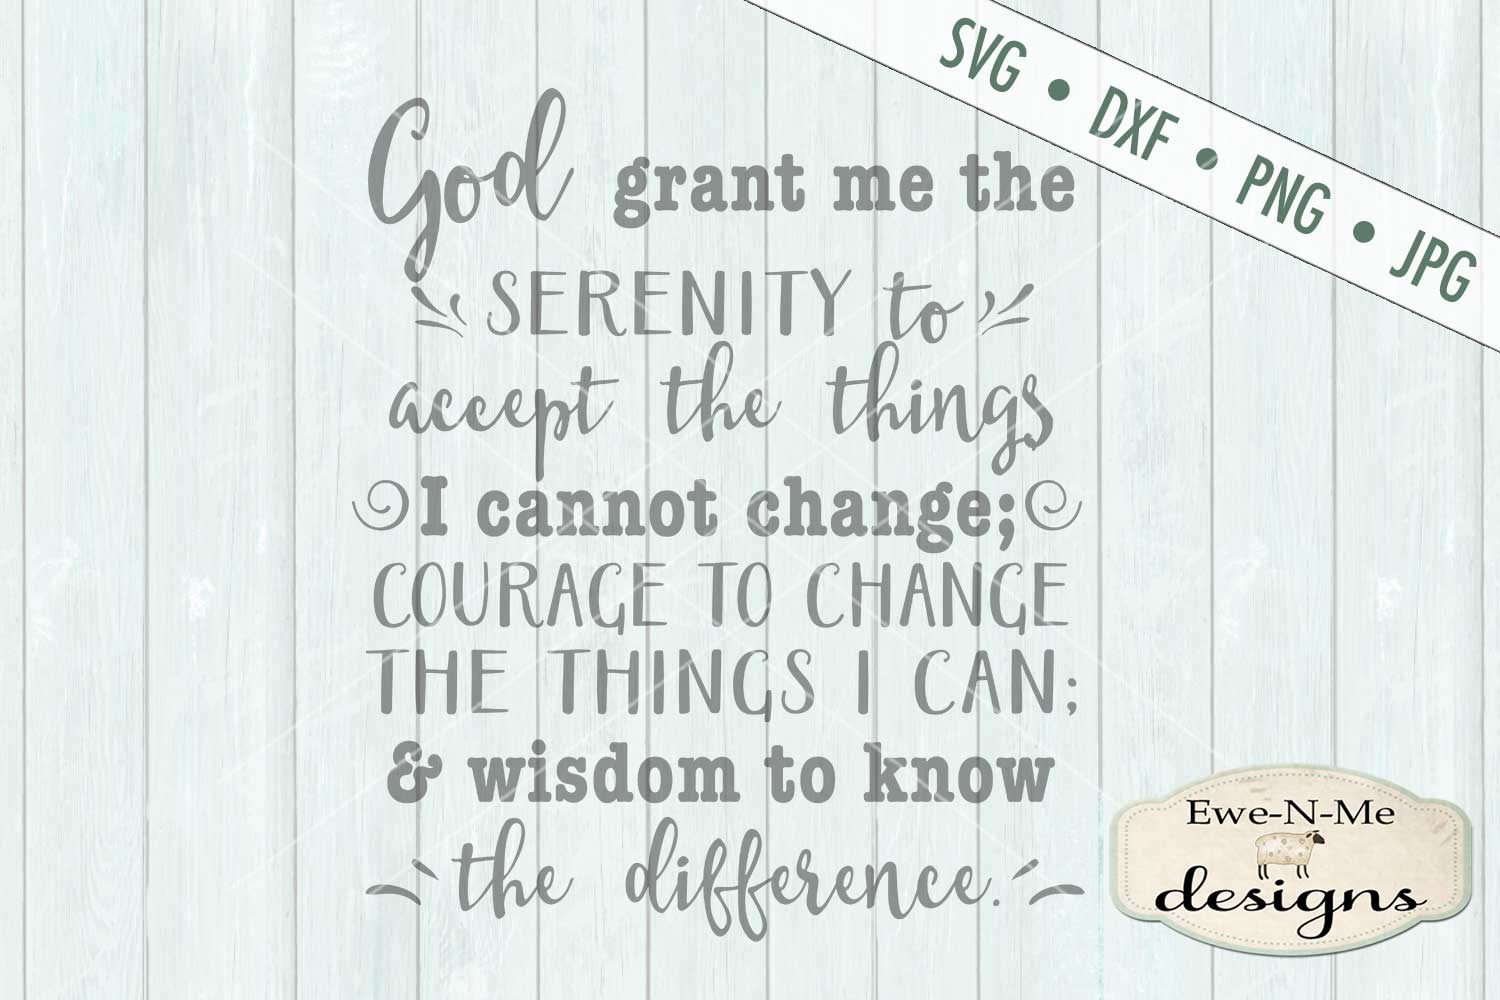 Serenity Prayer SVG DXF Cut File example image 2